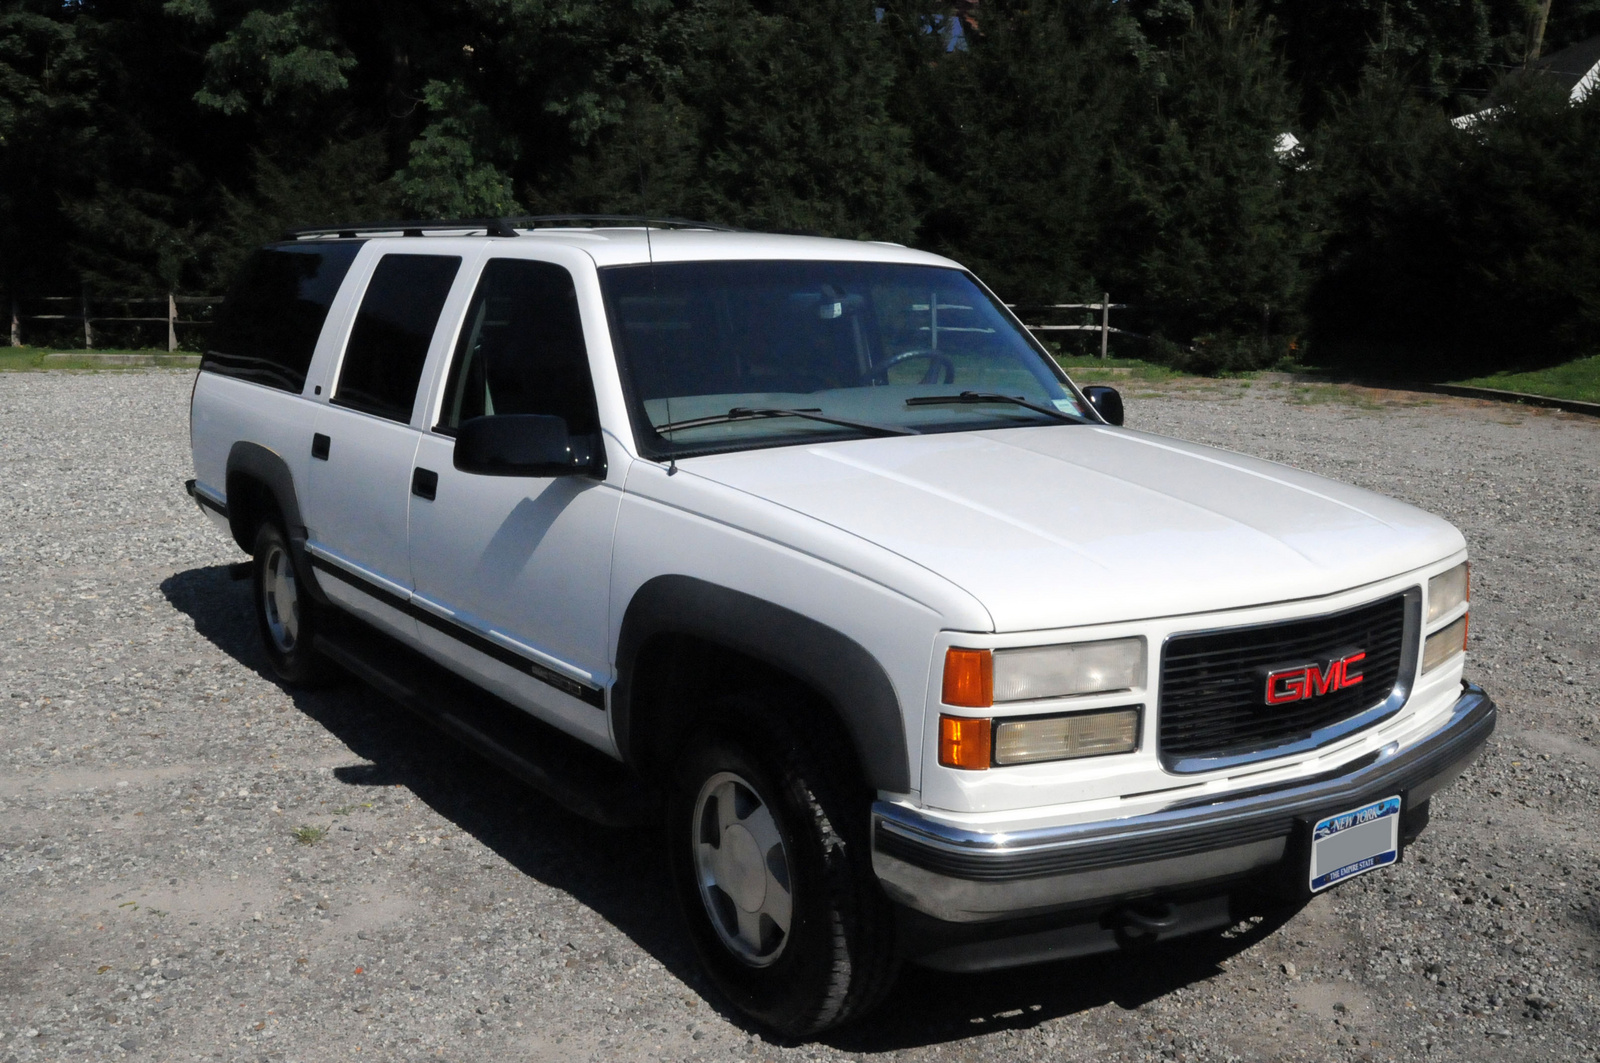 1990 GMC Suburban Overview C2081 on 1990 chevrolet r1500